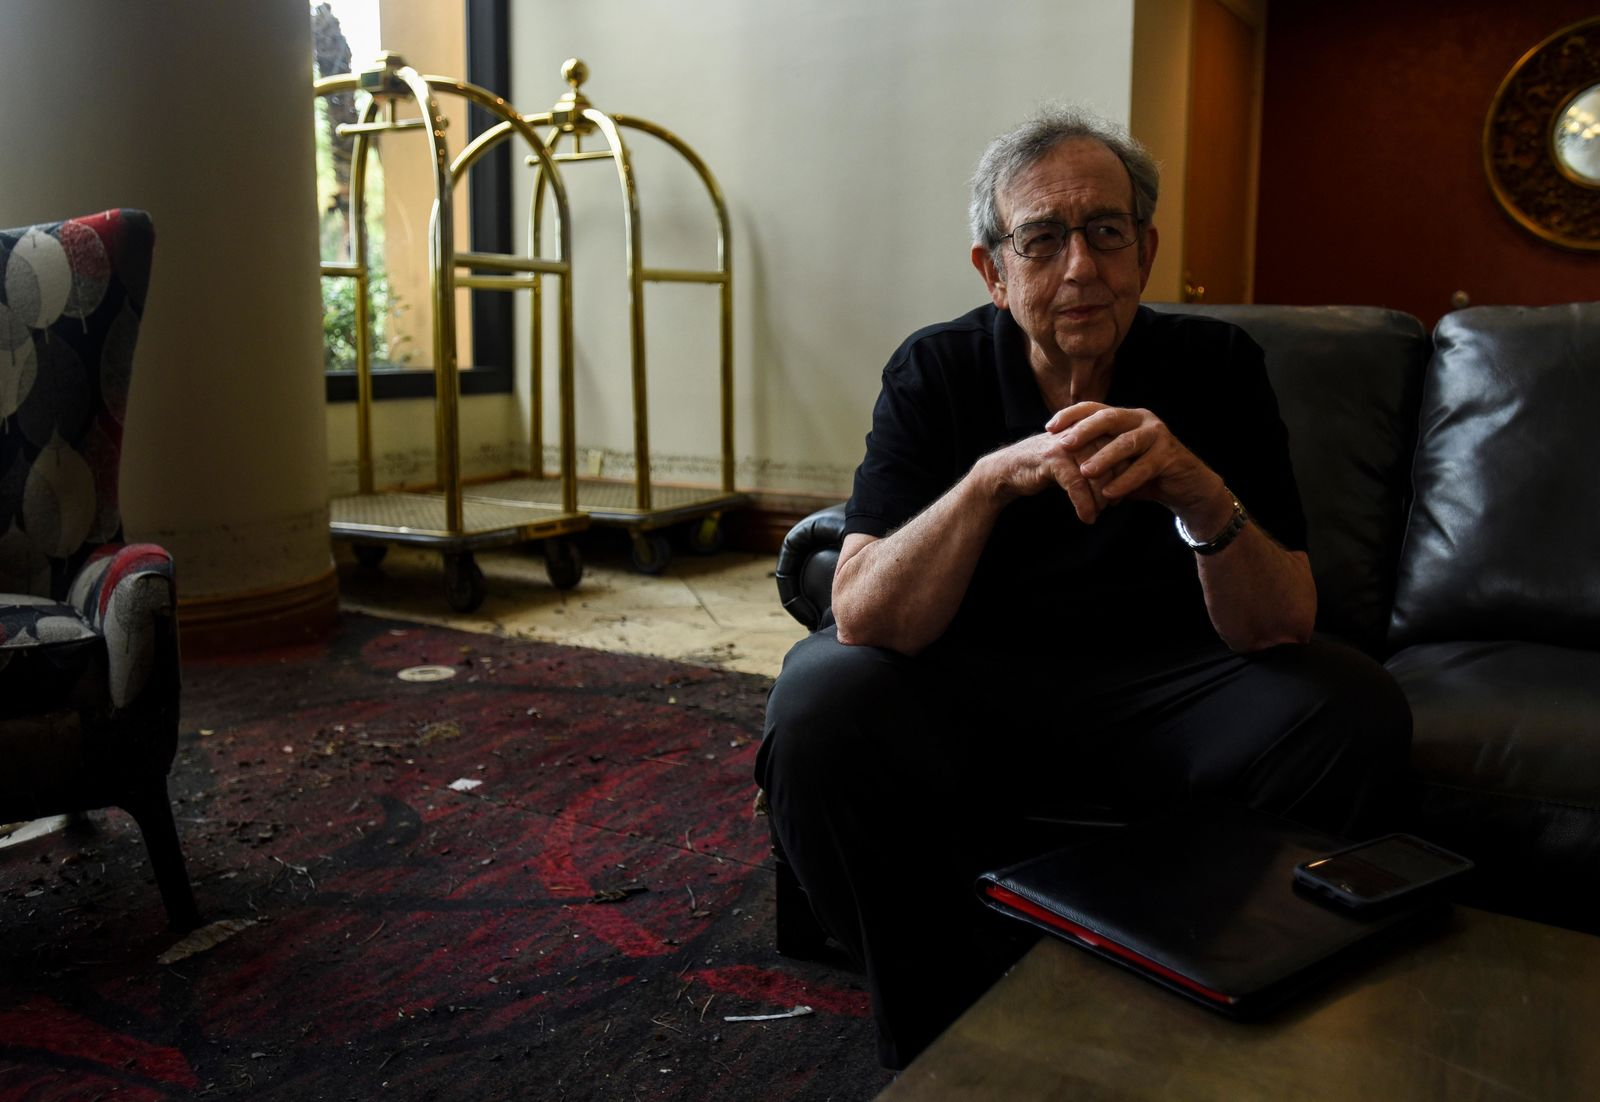 MCM Elegante manager Bill Bianchi talks about the flooding that affected up to two feet of the first floor of the hotel in Beaumont, Texas, Friday, Sept. 20, 2019. The heaviest rainfall had ended by Thursday night in Southeast Texas, but forecasters warned that parts of northeast Texas, Arkansas, Oklahoma and Louisiana could see flash flooding as Imelda's remnants shifted to the north. (Ryan Welch/The Beaumont Enterprise via AP)